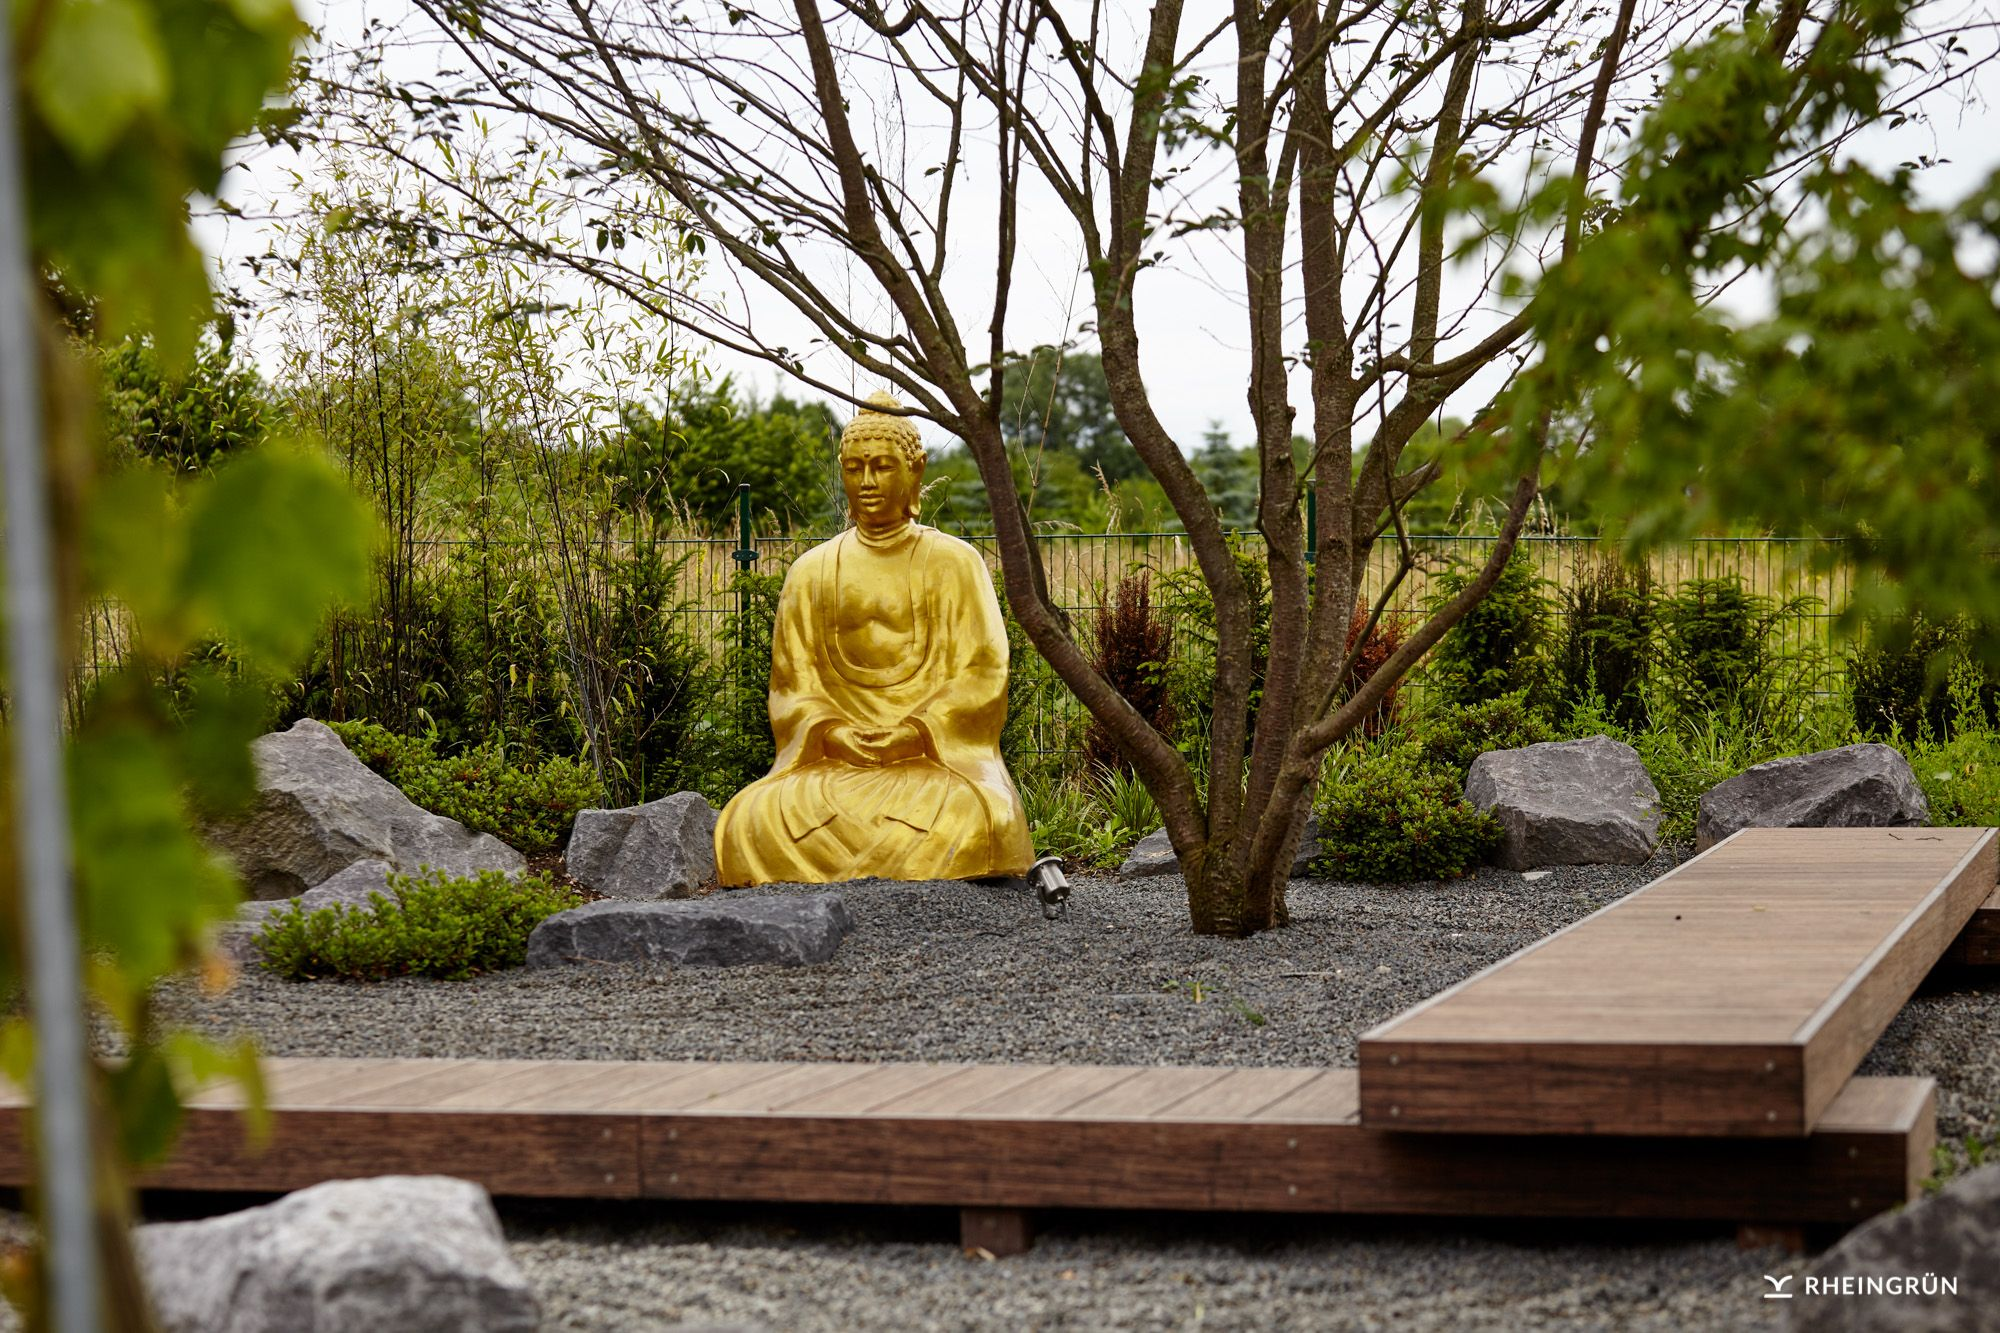 origineller japanischer garten mit goldener buddha statue in kiesbeet asiatischer garten. Black Bedroom Furniture Sets. Home Design Ideas